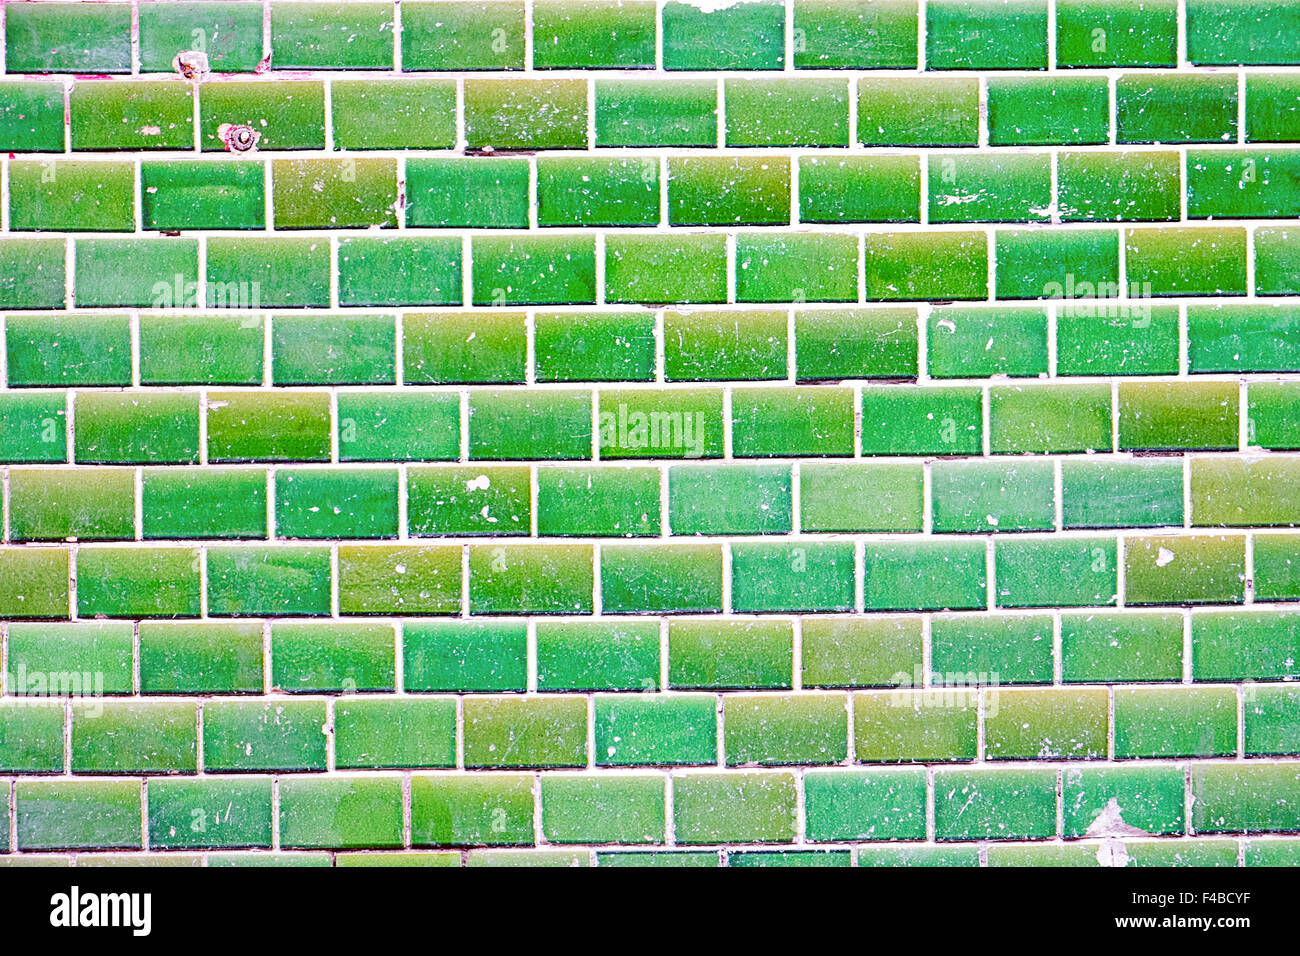 Green tiled wall - Stock Image